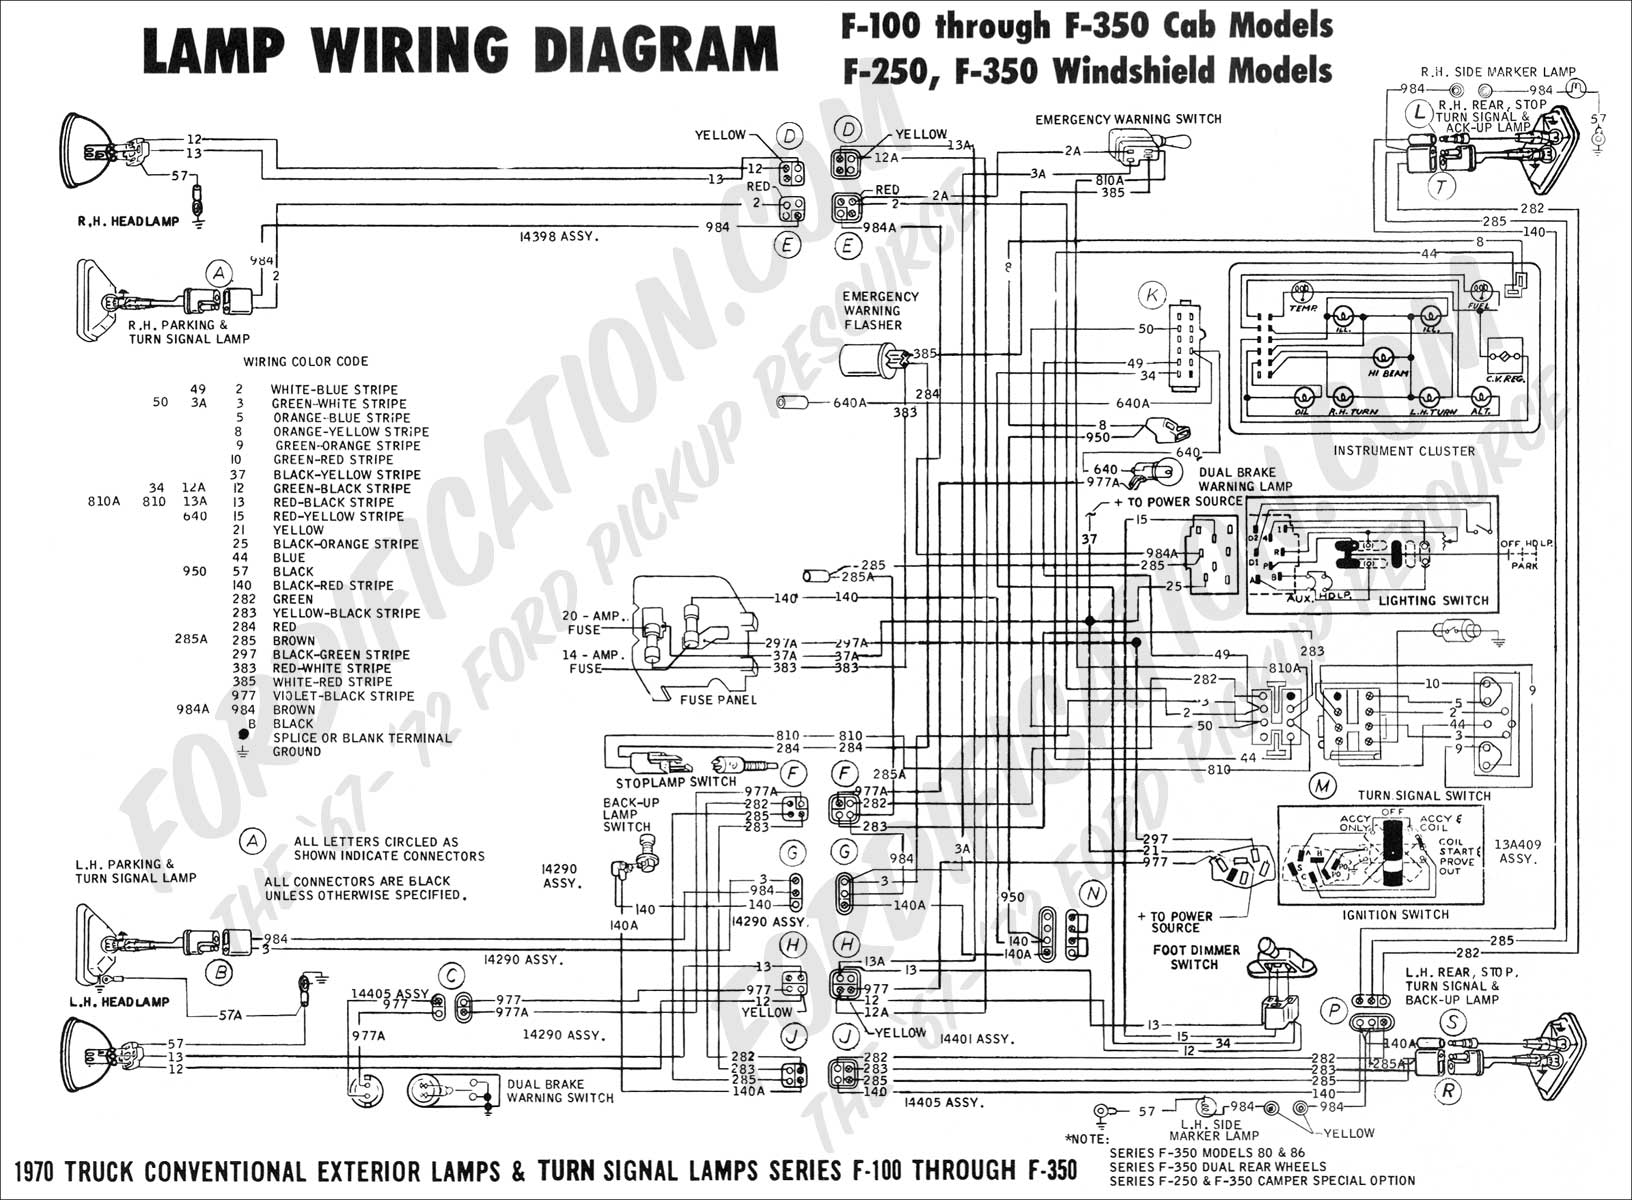 1990 ford f700 wiring diagram 1990 f250 wiring diagram 1990 wiring diagrams online